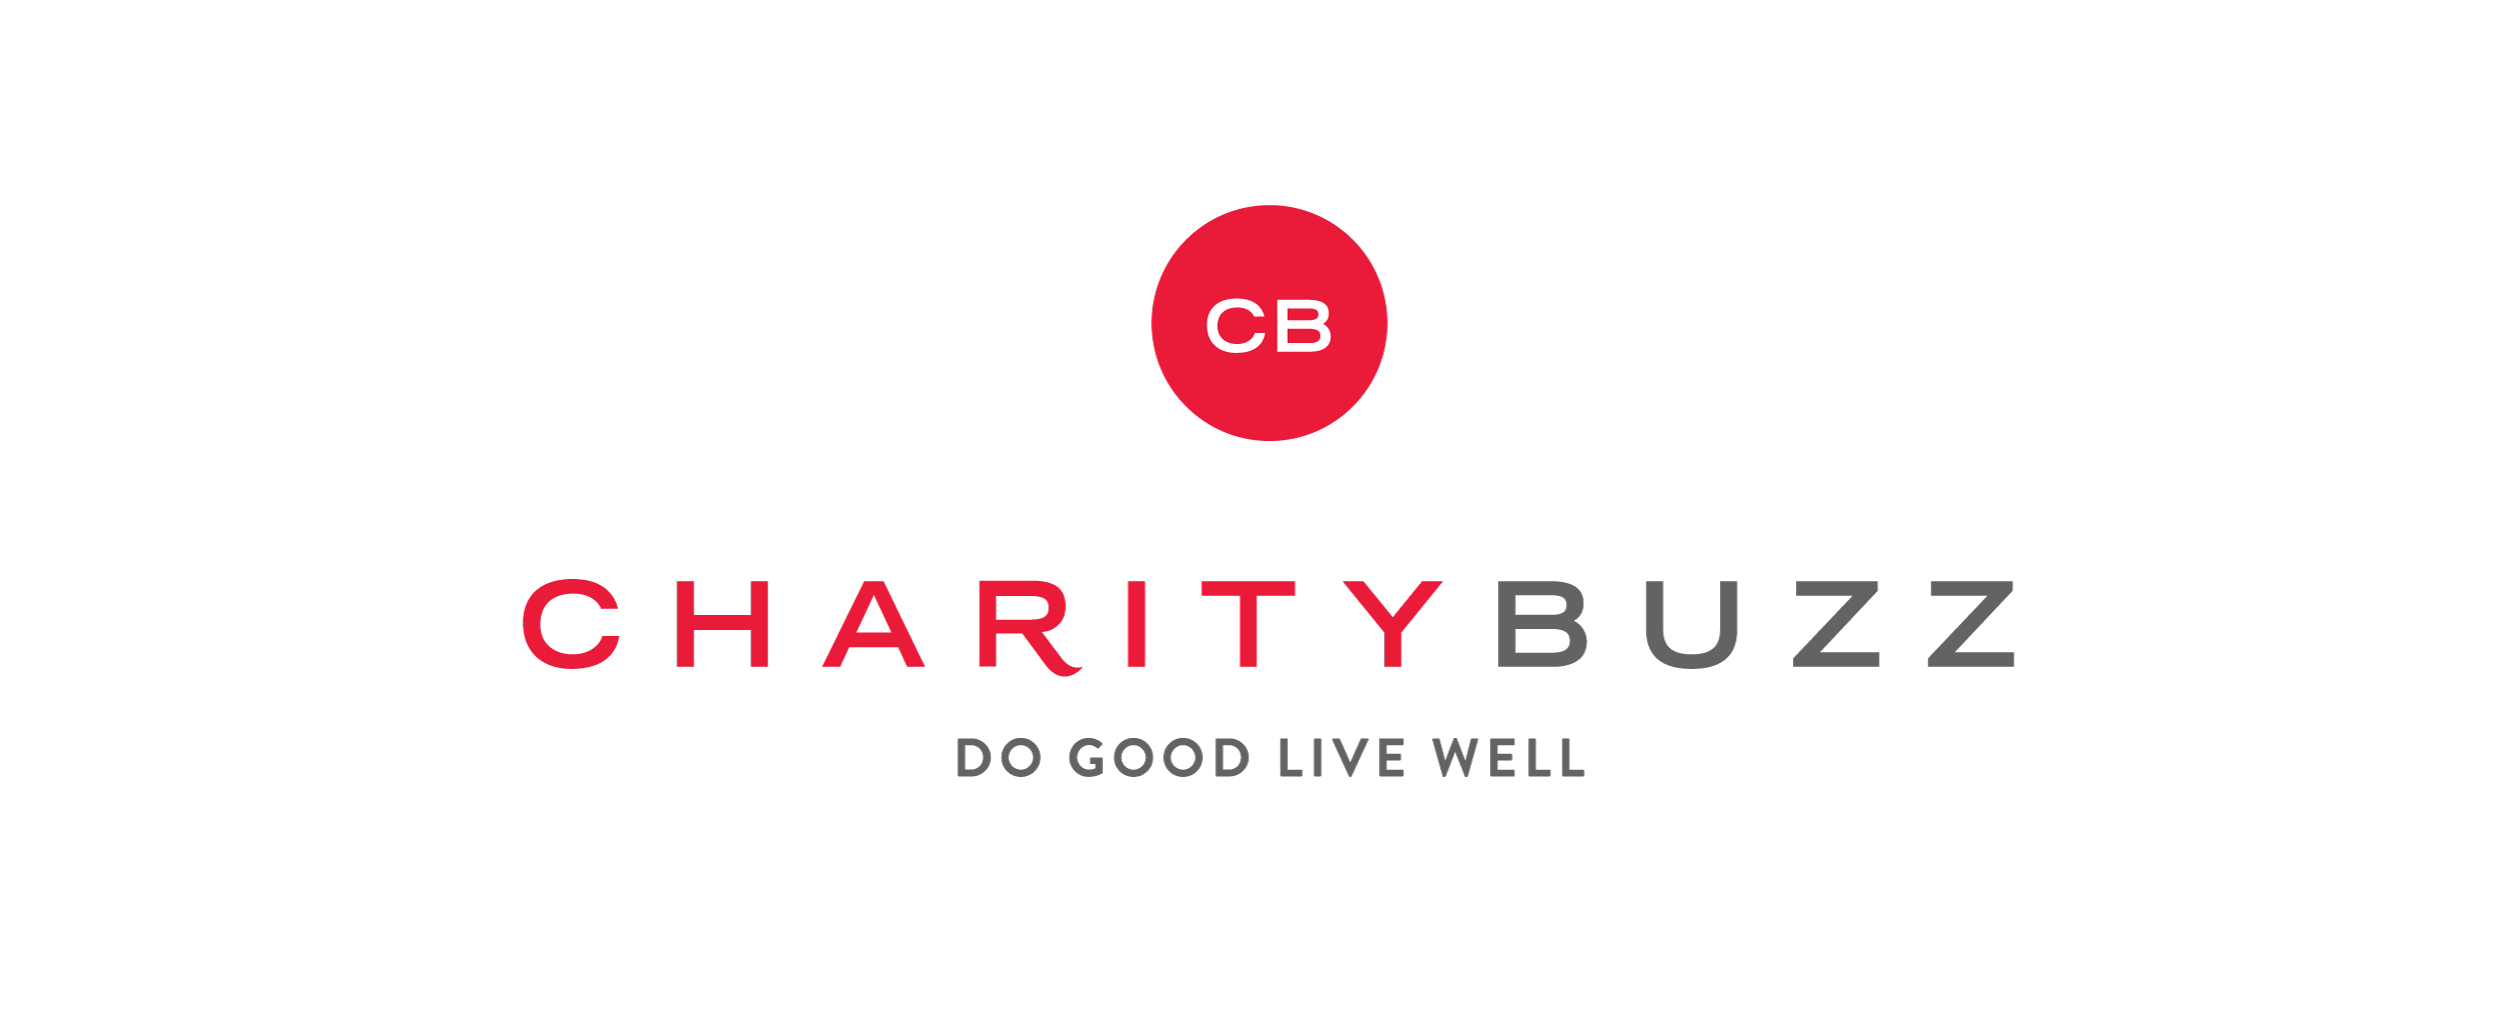 Charitybuzz_full-color